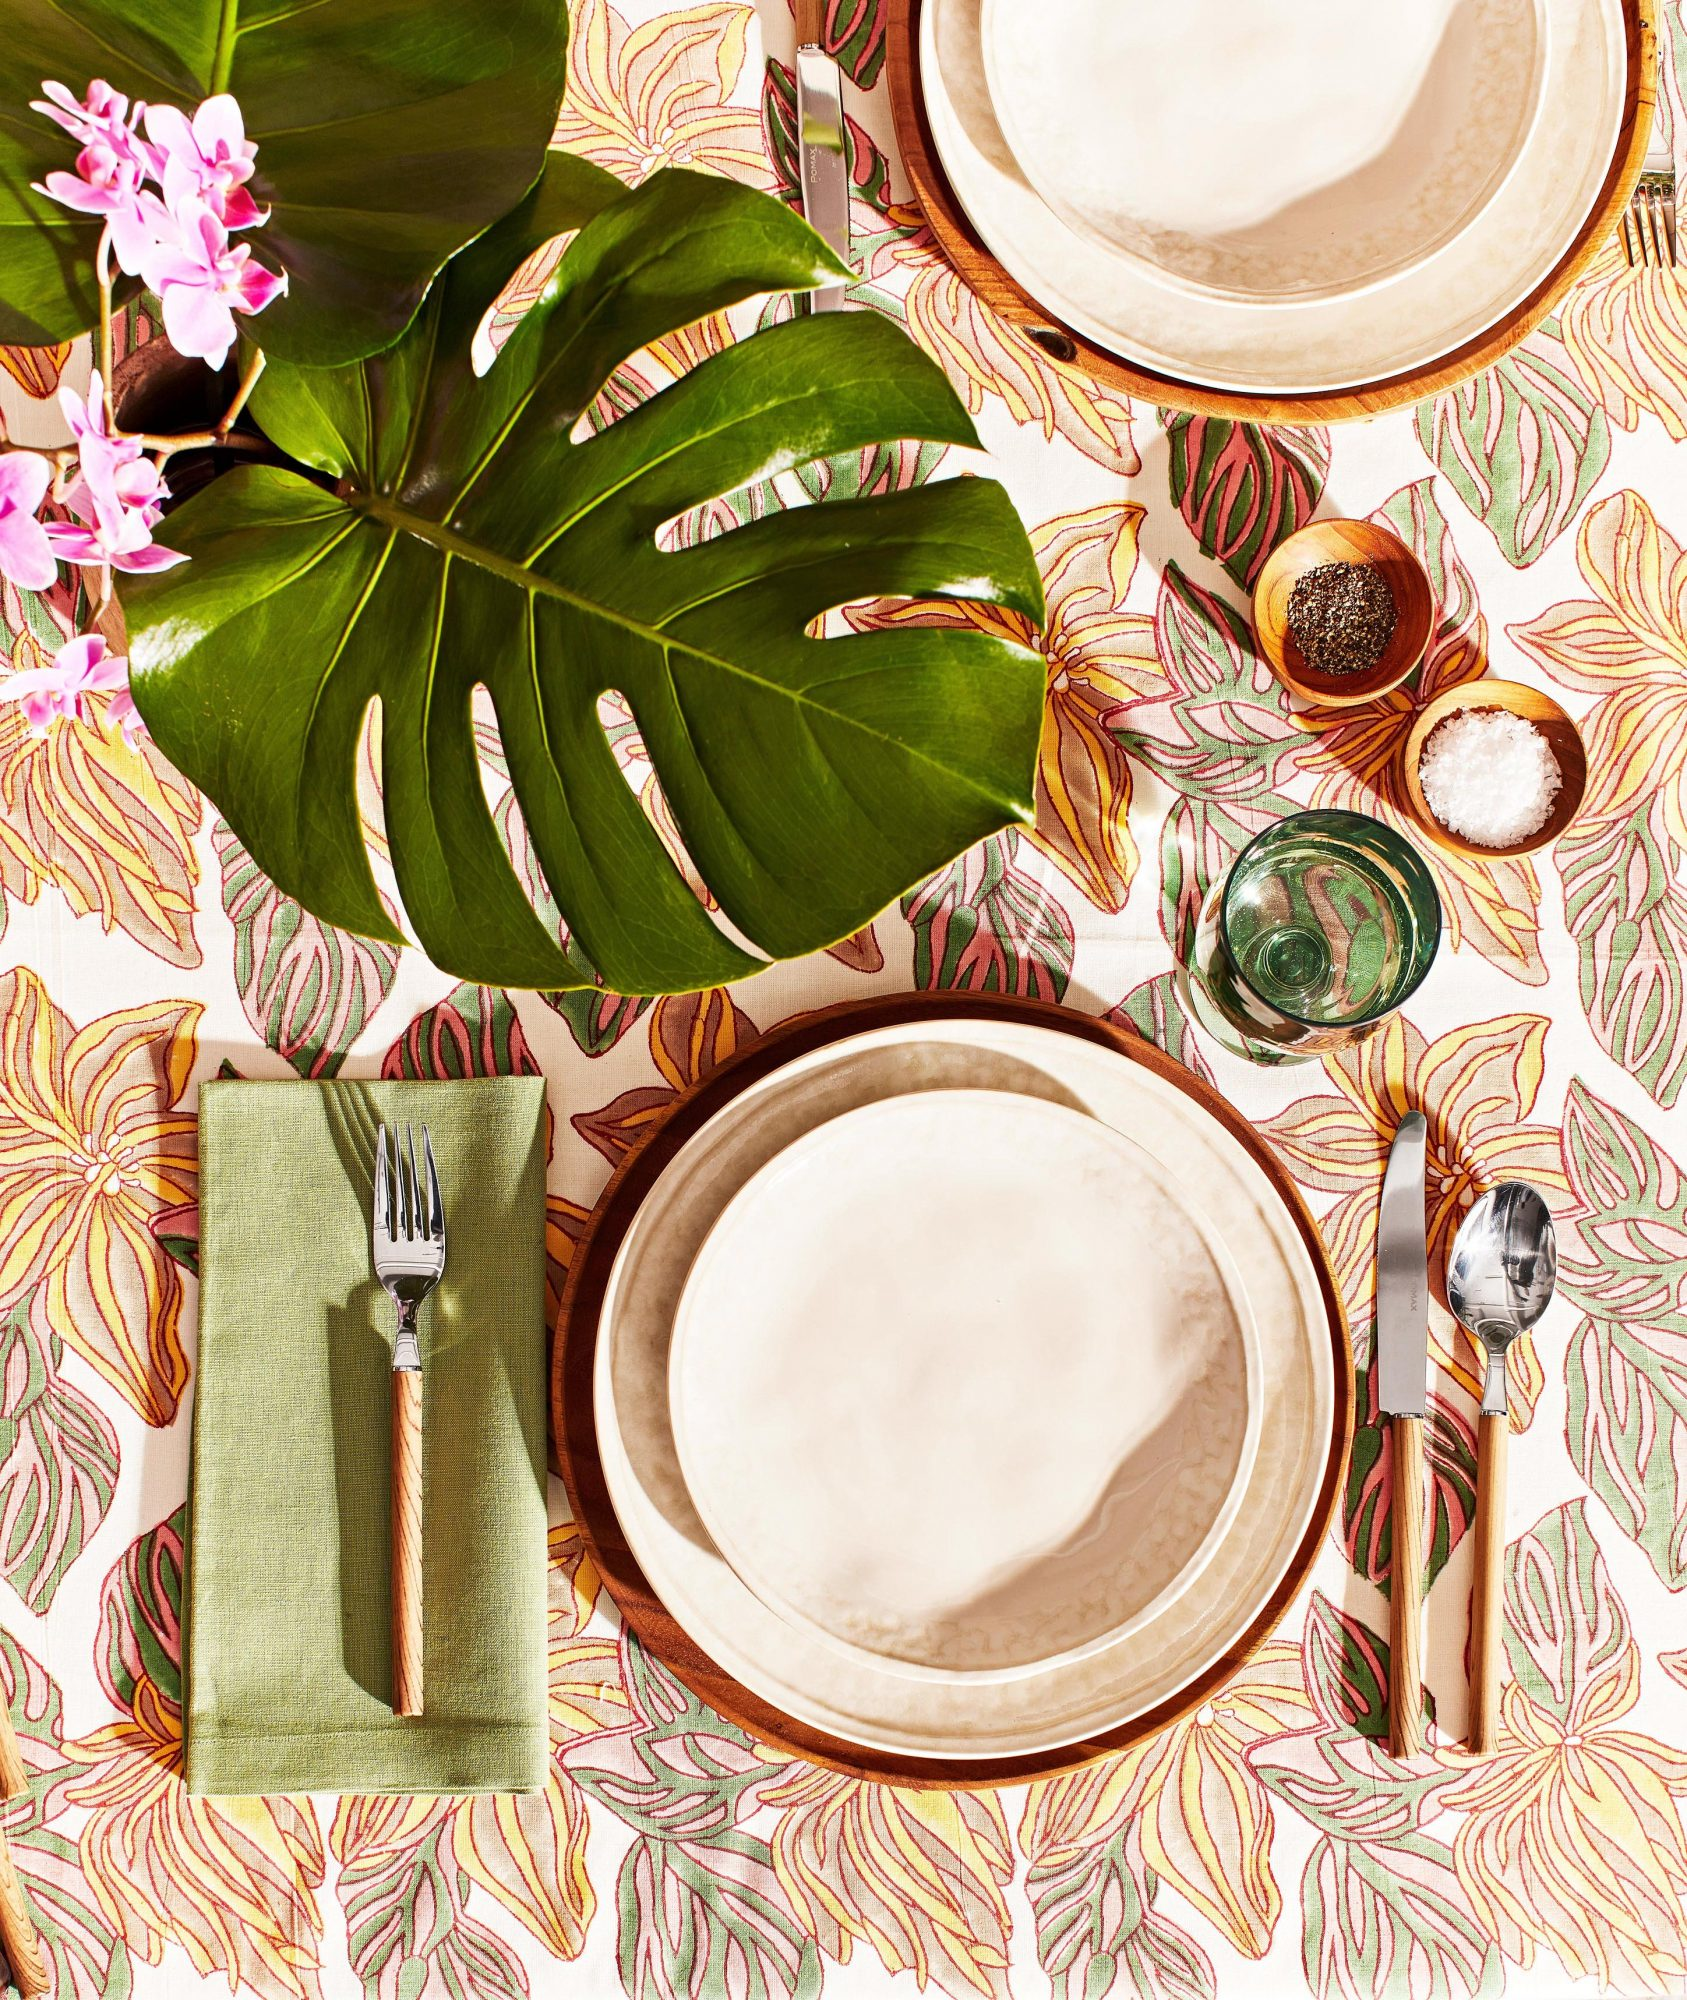 table cloth with palm tree design and tan table setting